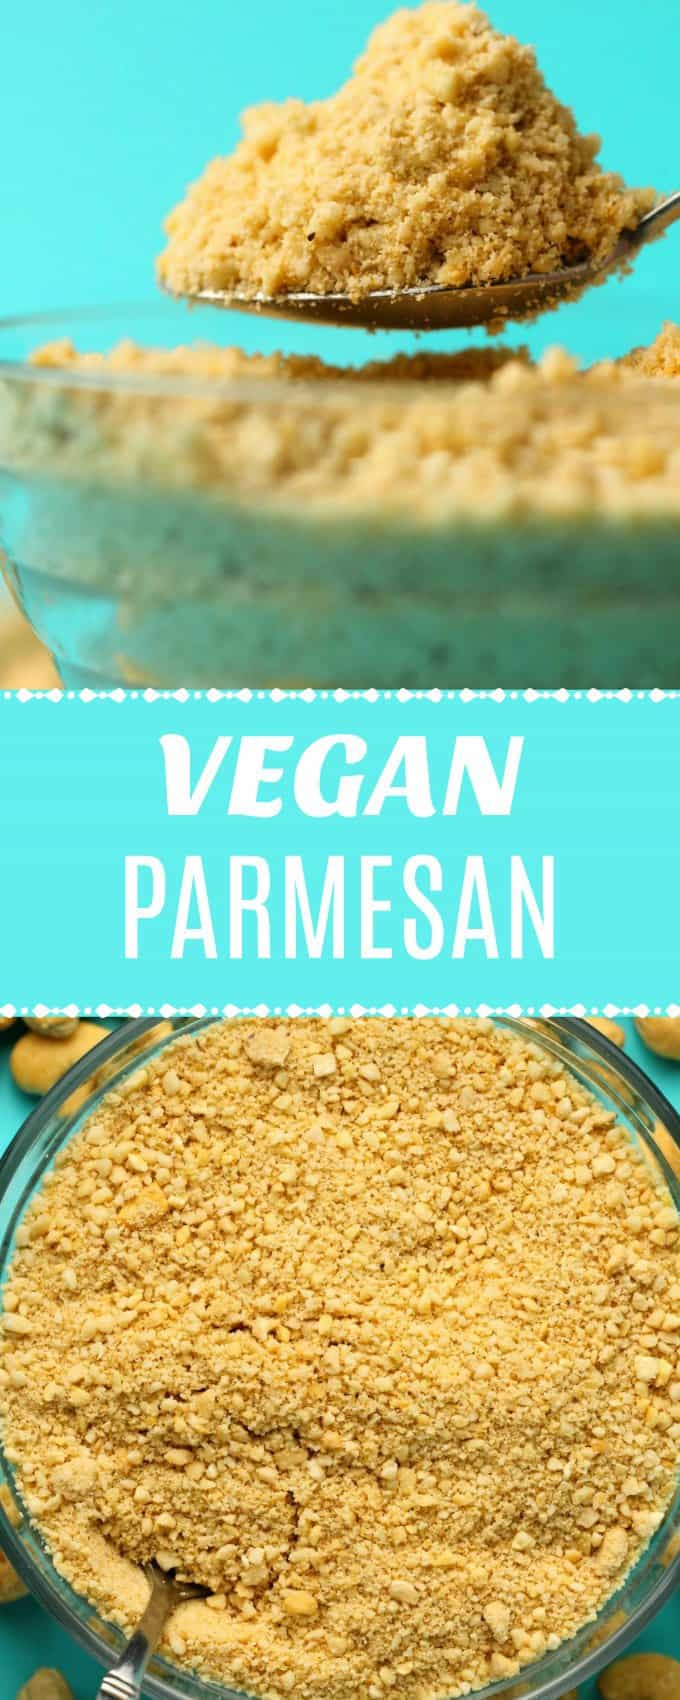 Making your own vegan parmesan cheese is so fabulous you'll likely want to keep a permanent batch of this in your fridge and sprinkle it on EVERYTHING! | lovingitvegan.com